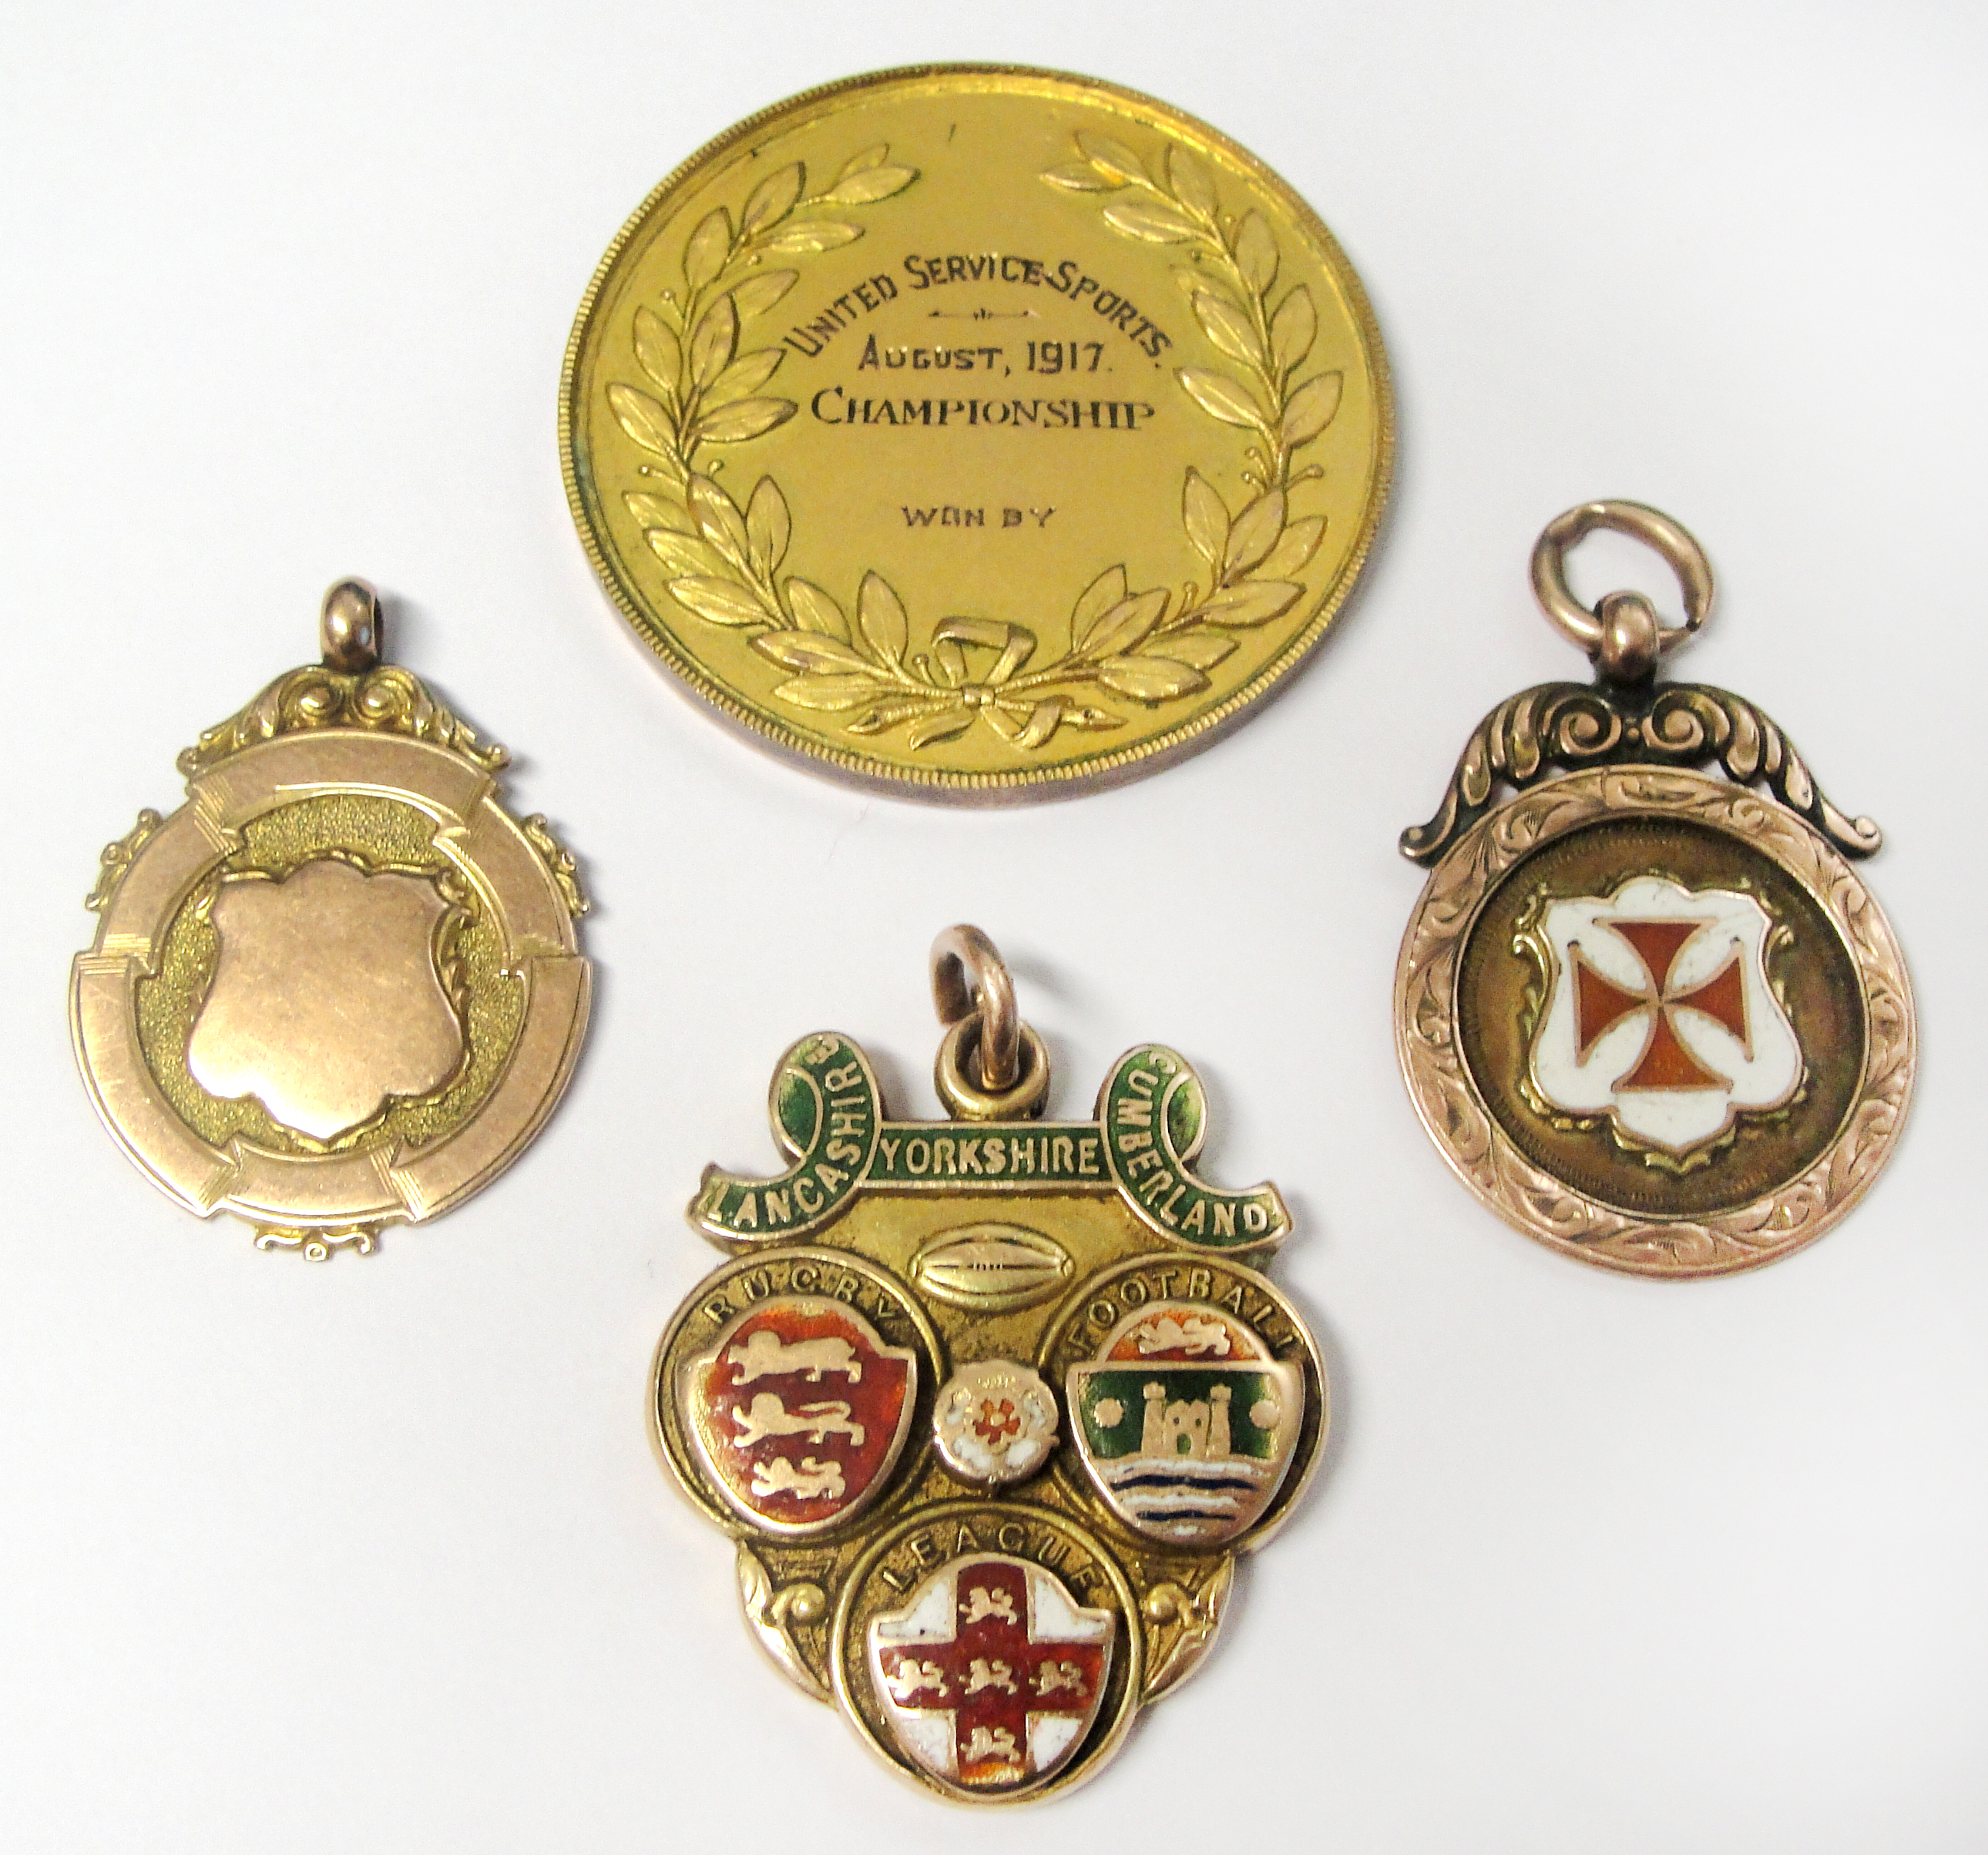 Lot 26 - A rare collection of Rugby League medals awarded to Harold Buck, comprising a 15ct gold and enamel